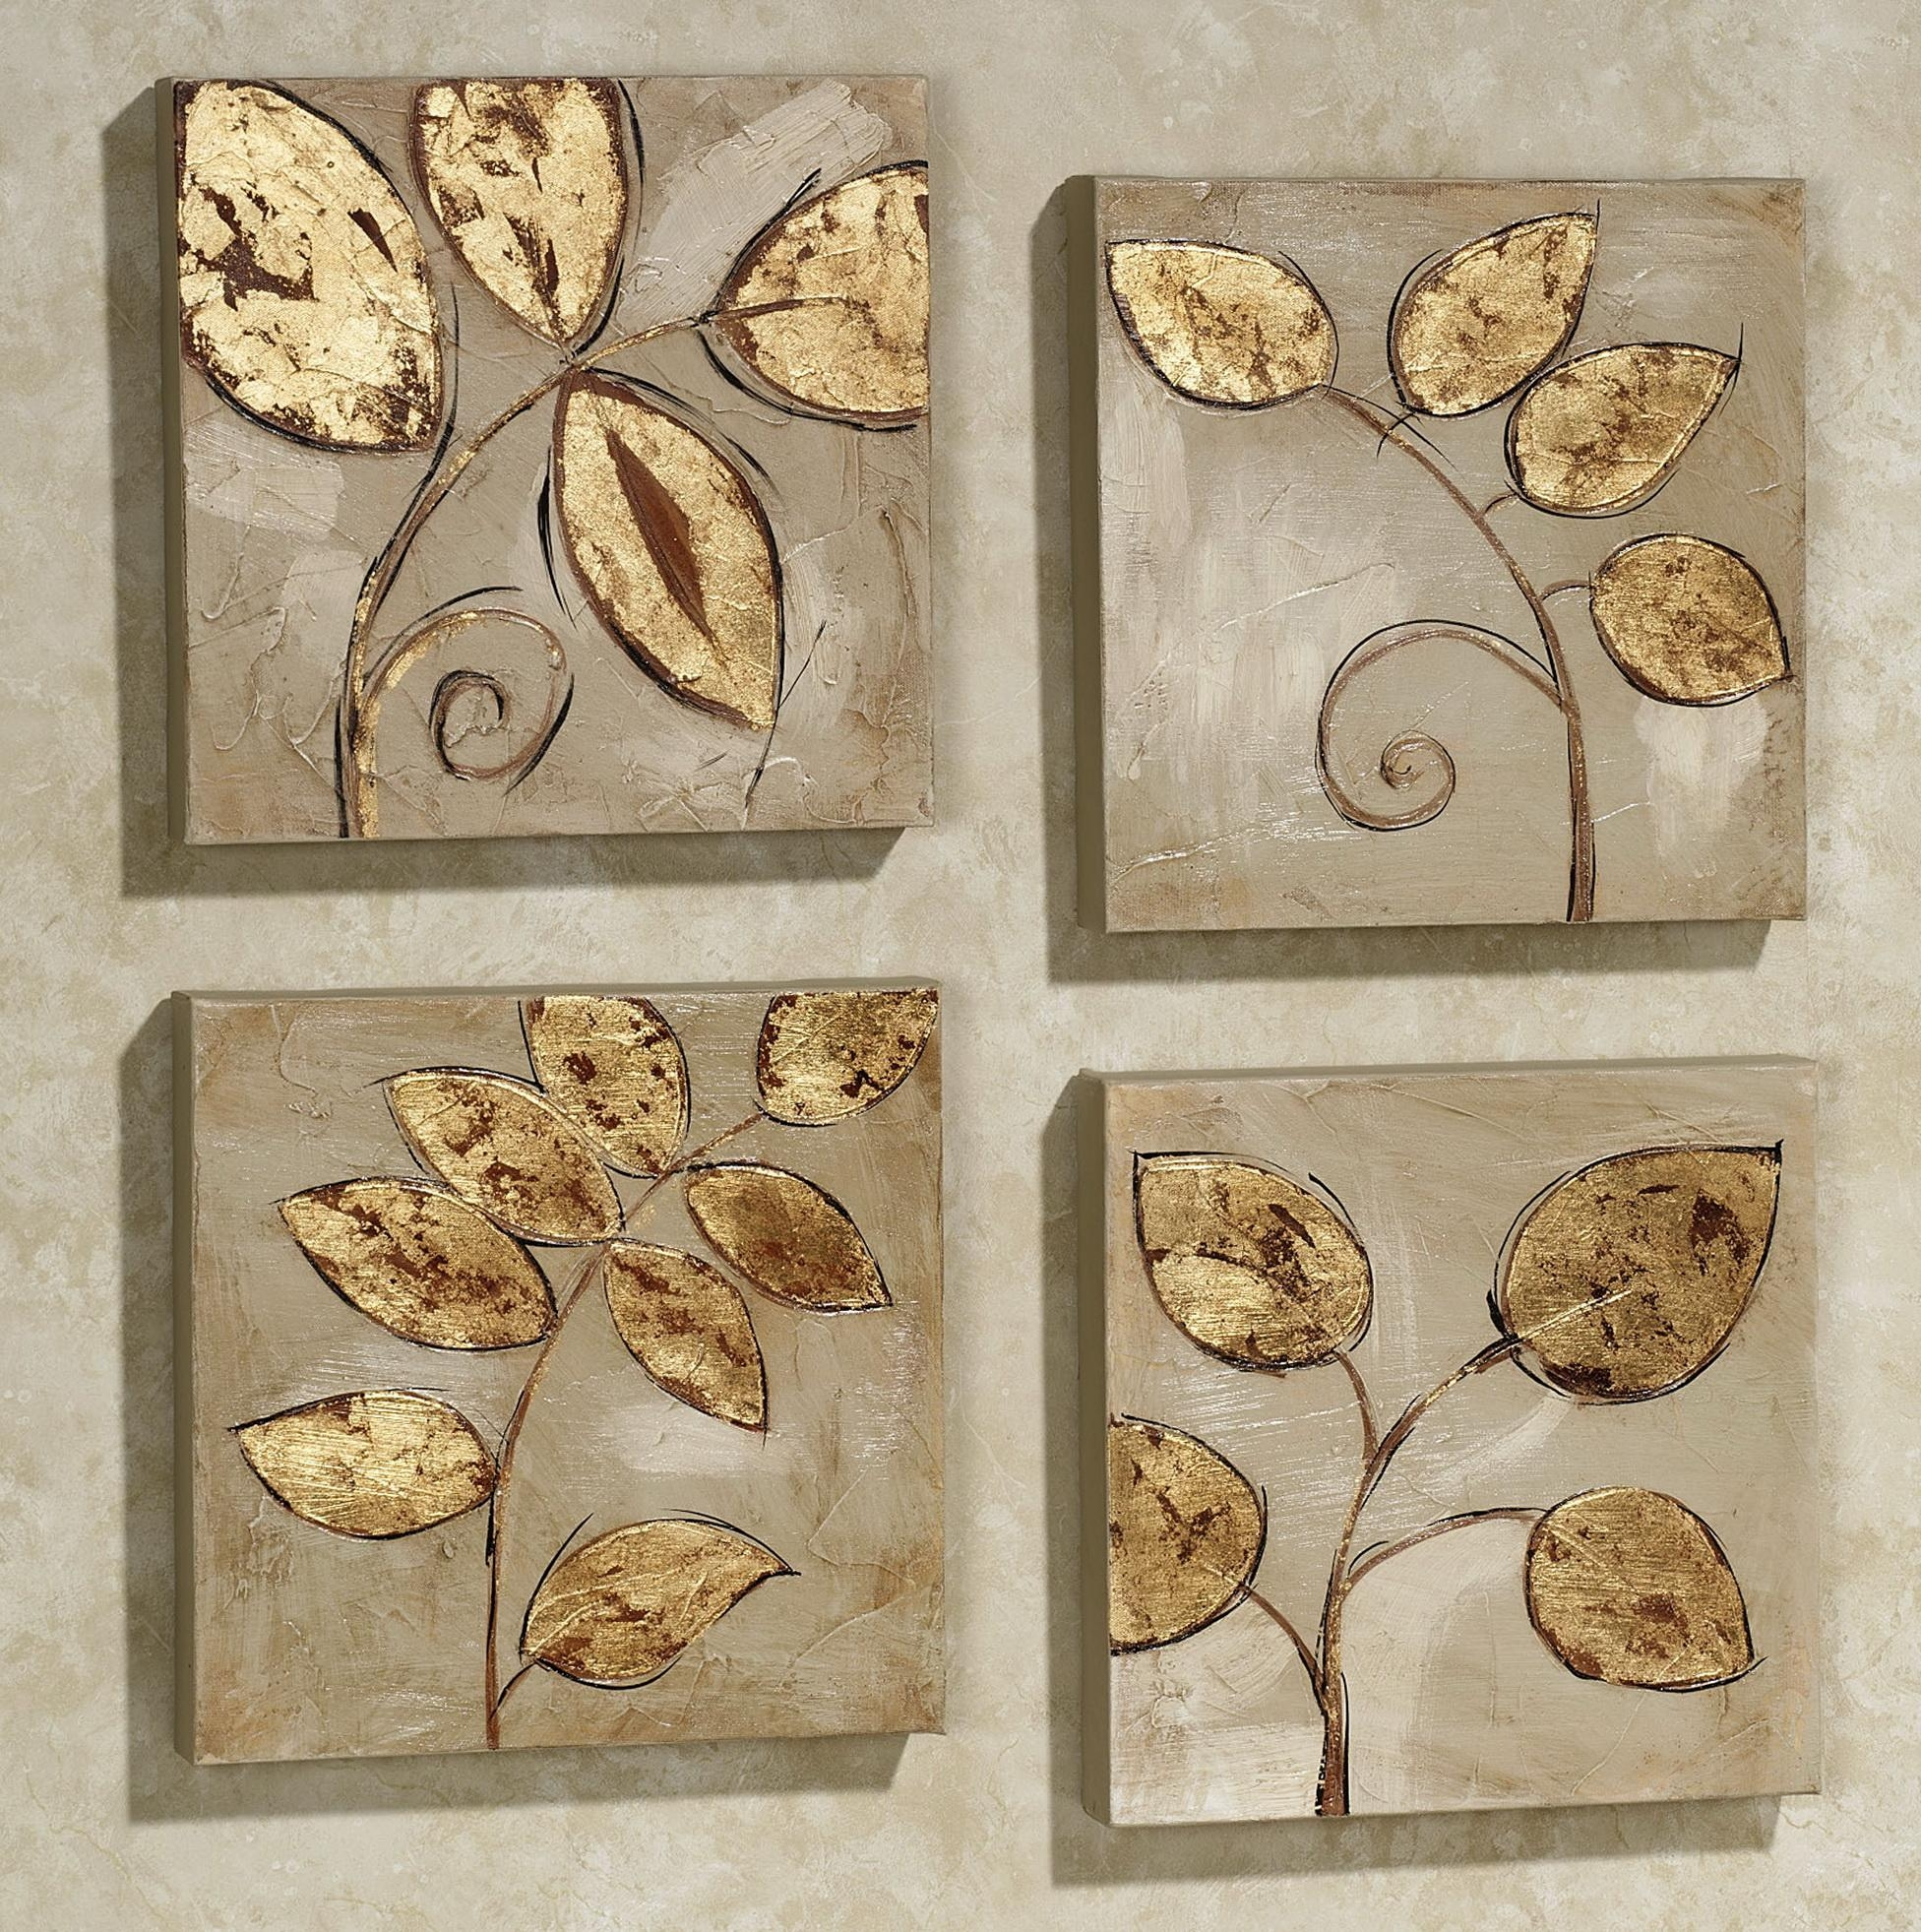 Wall Art Designs: Wall Art Sets 4 Piece Canvas Wall Art Sets, Wall In 4 Piece Wall Art Sets (Image 10 of 20)